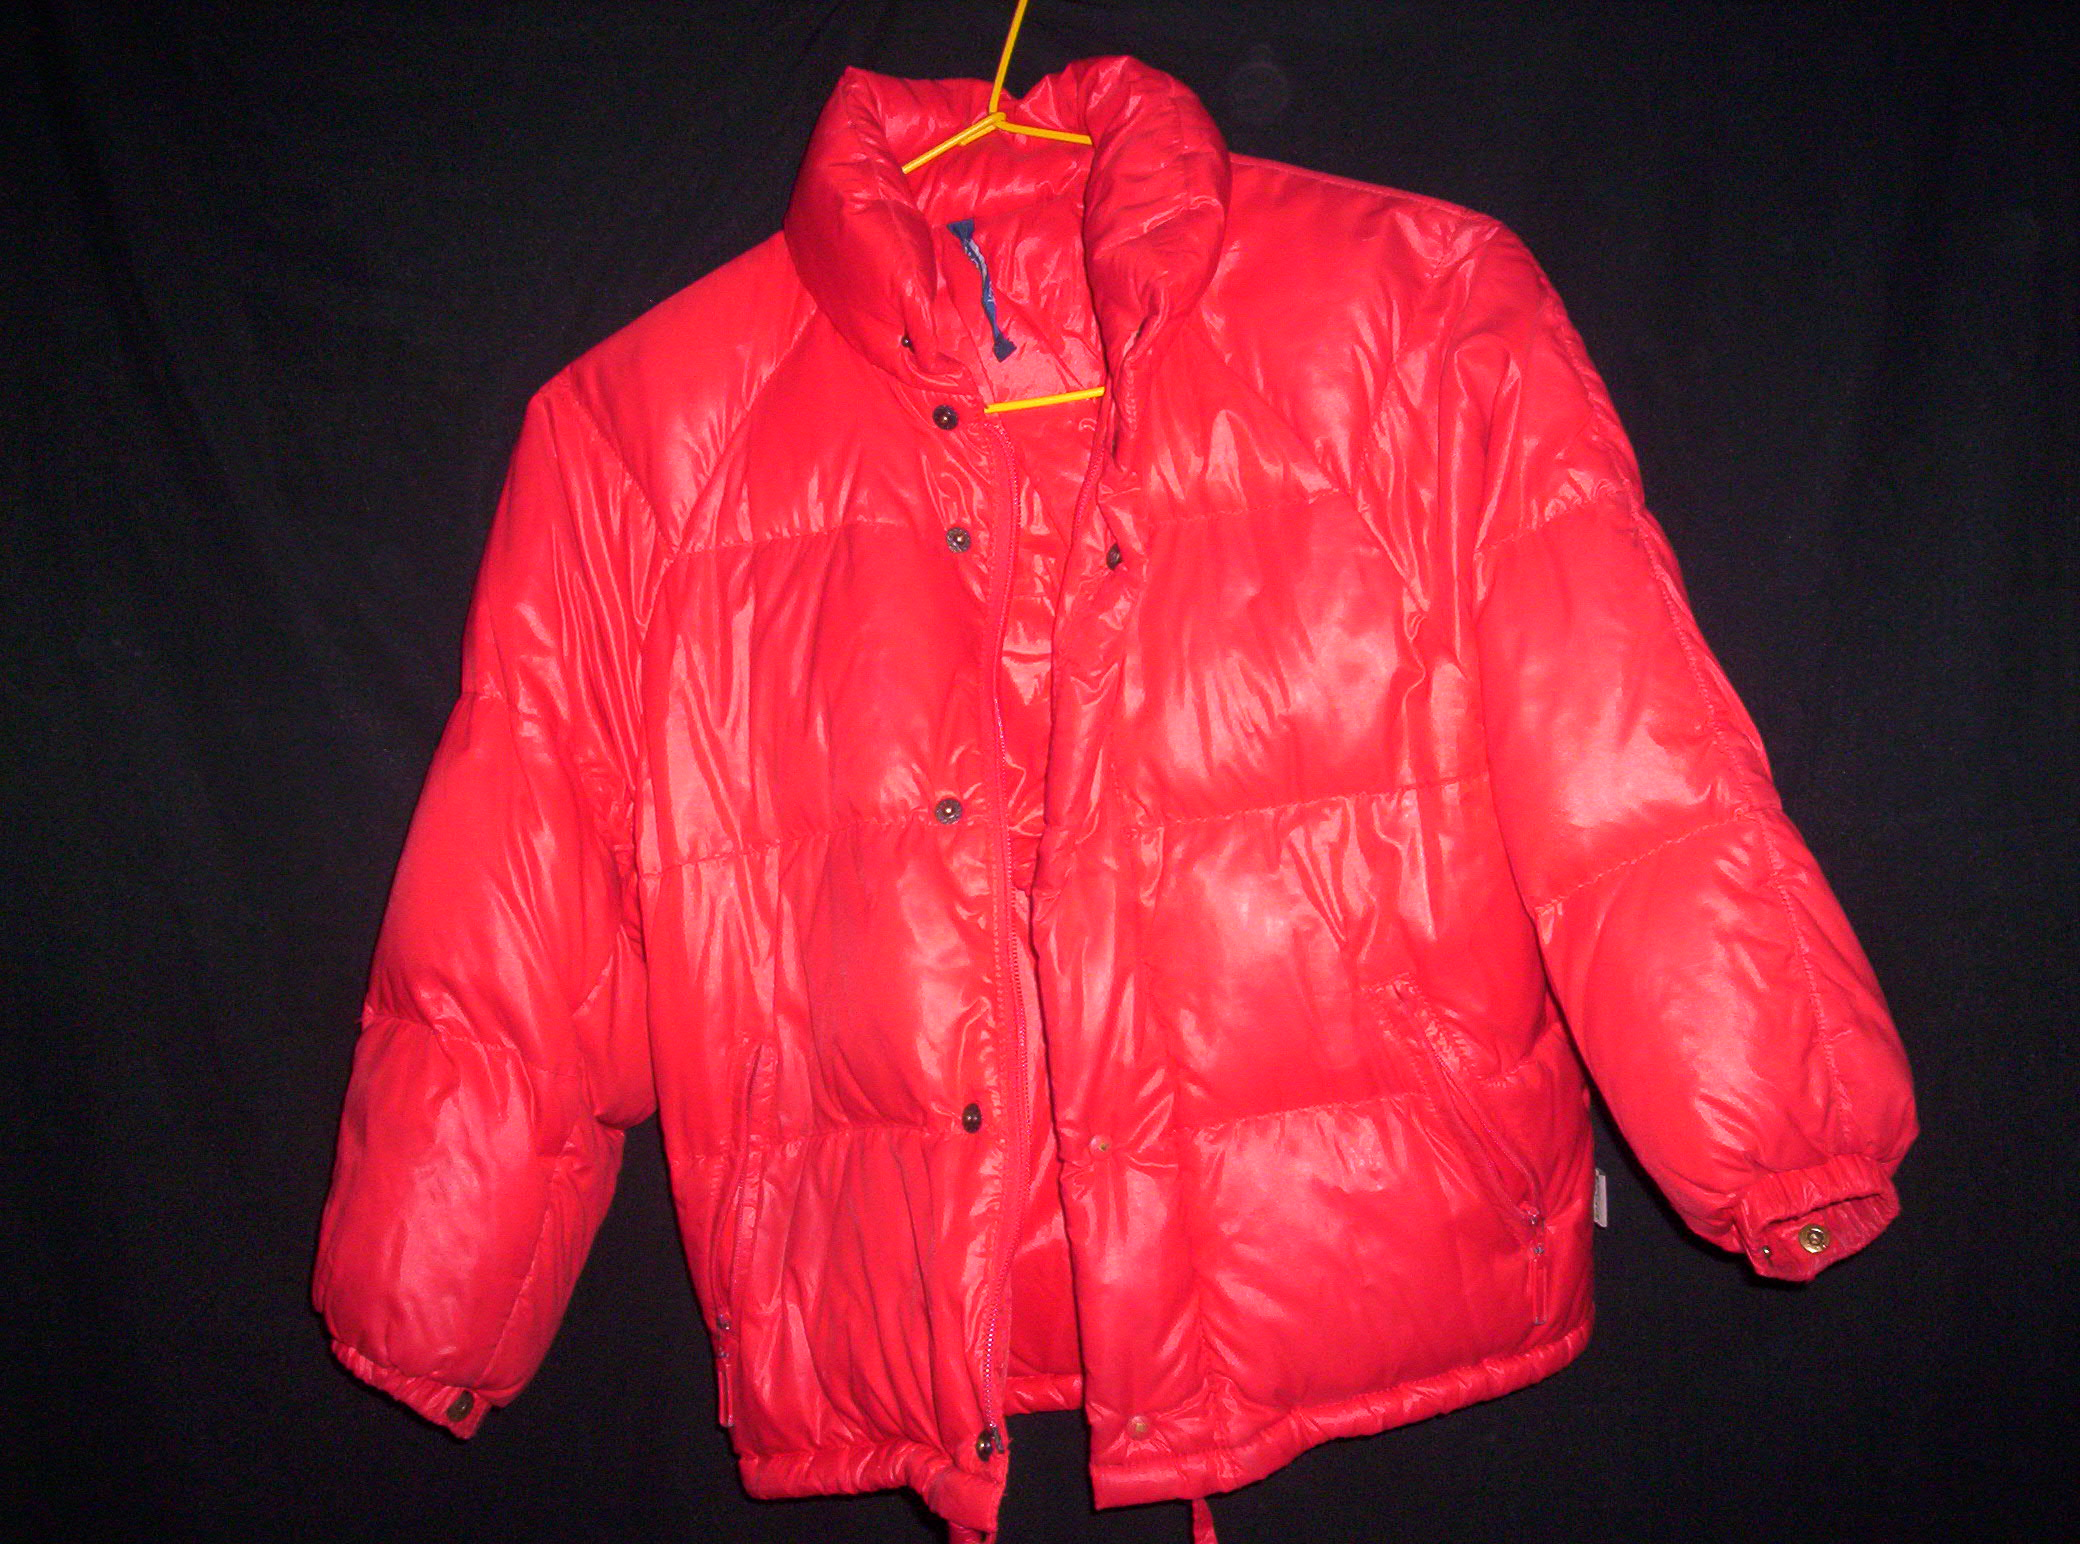 A red quilted ski jacket